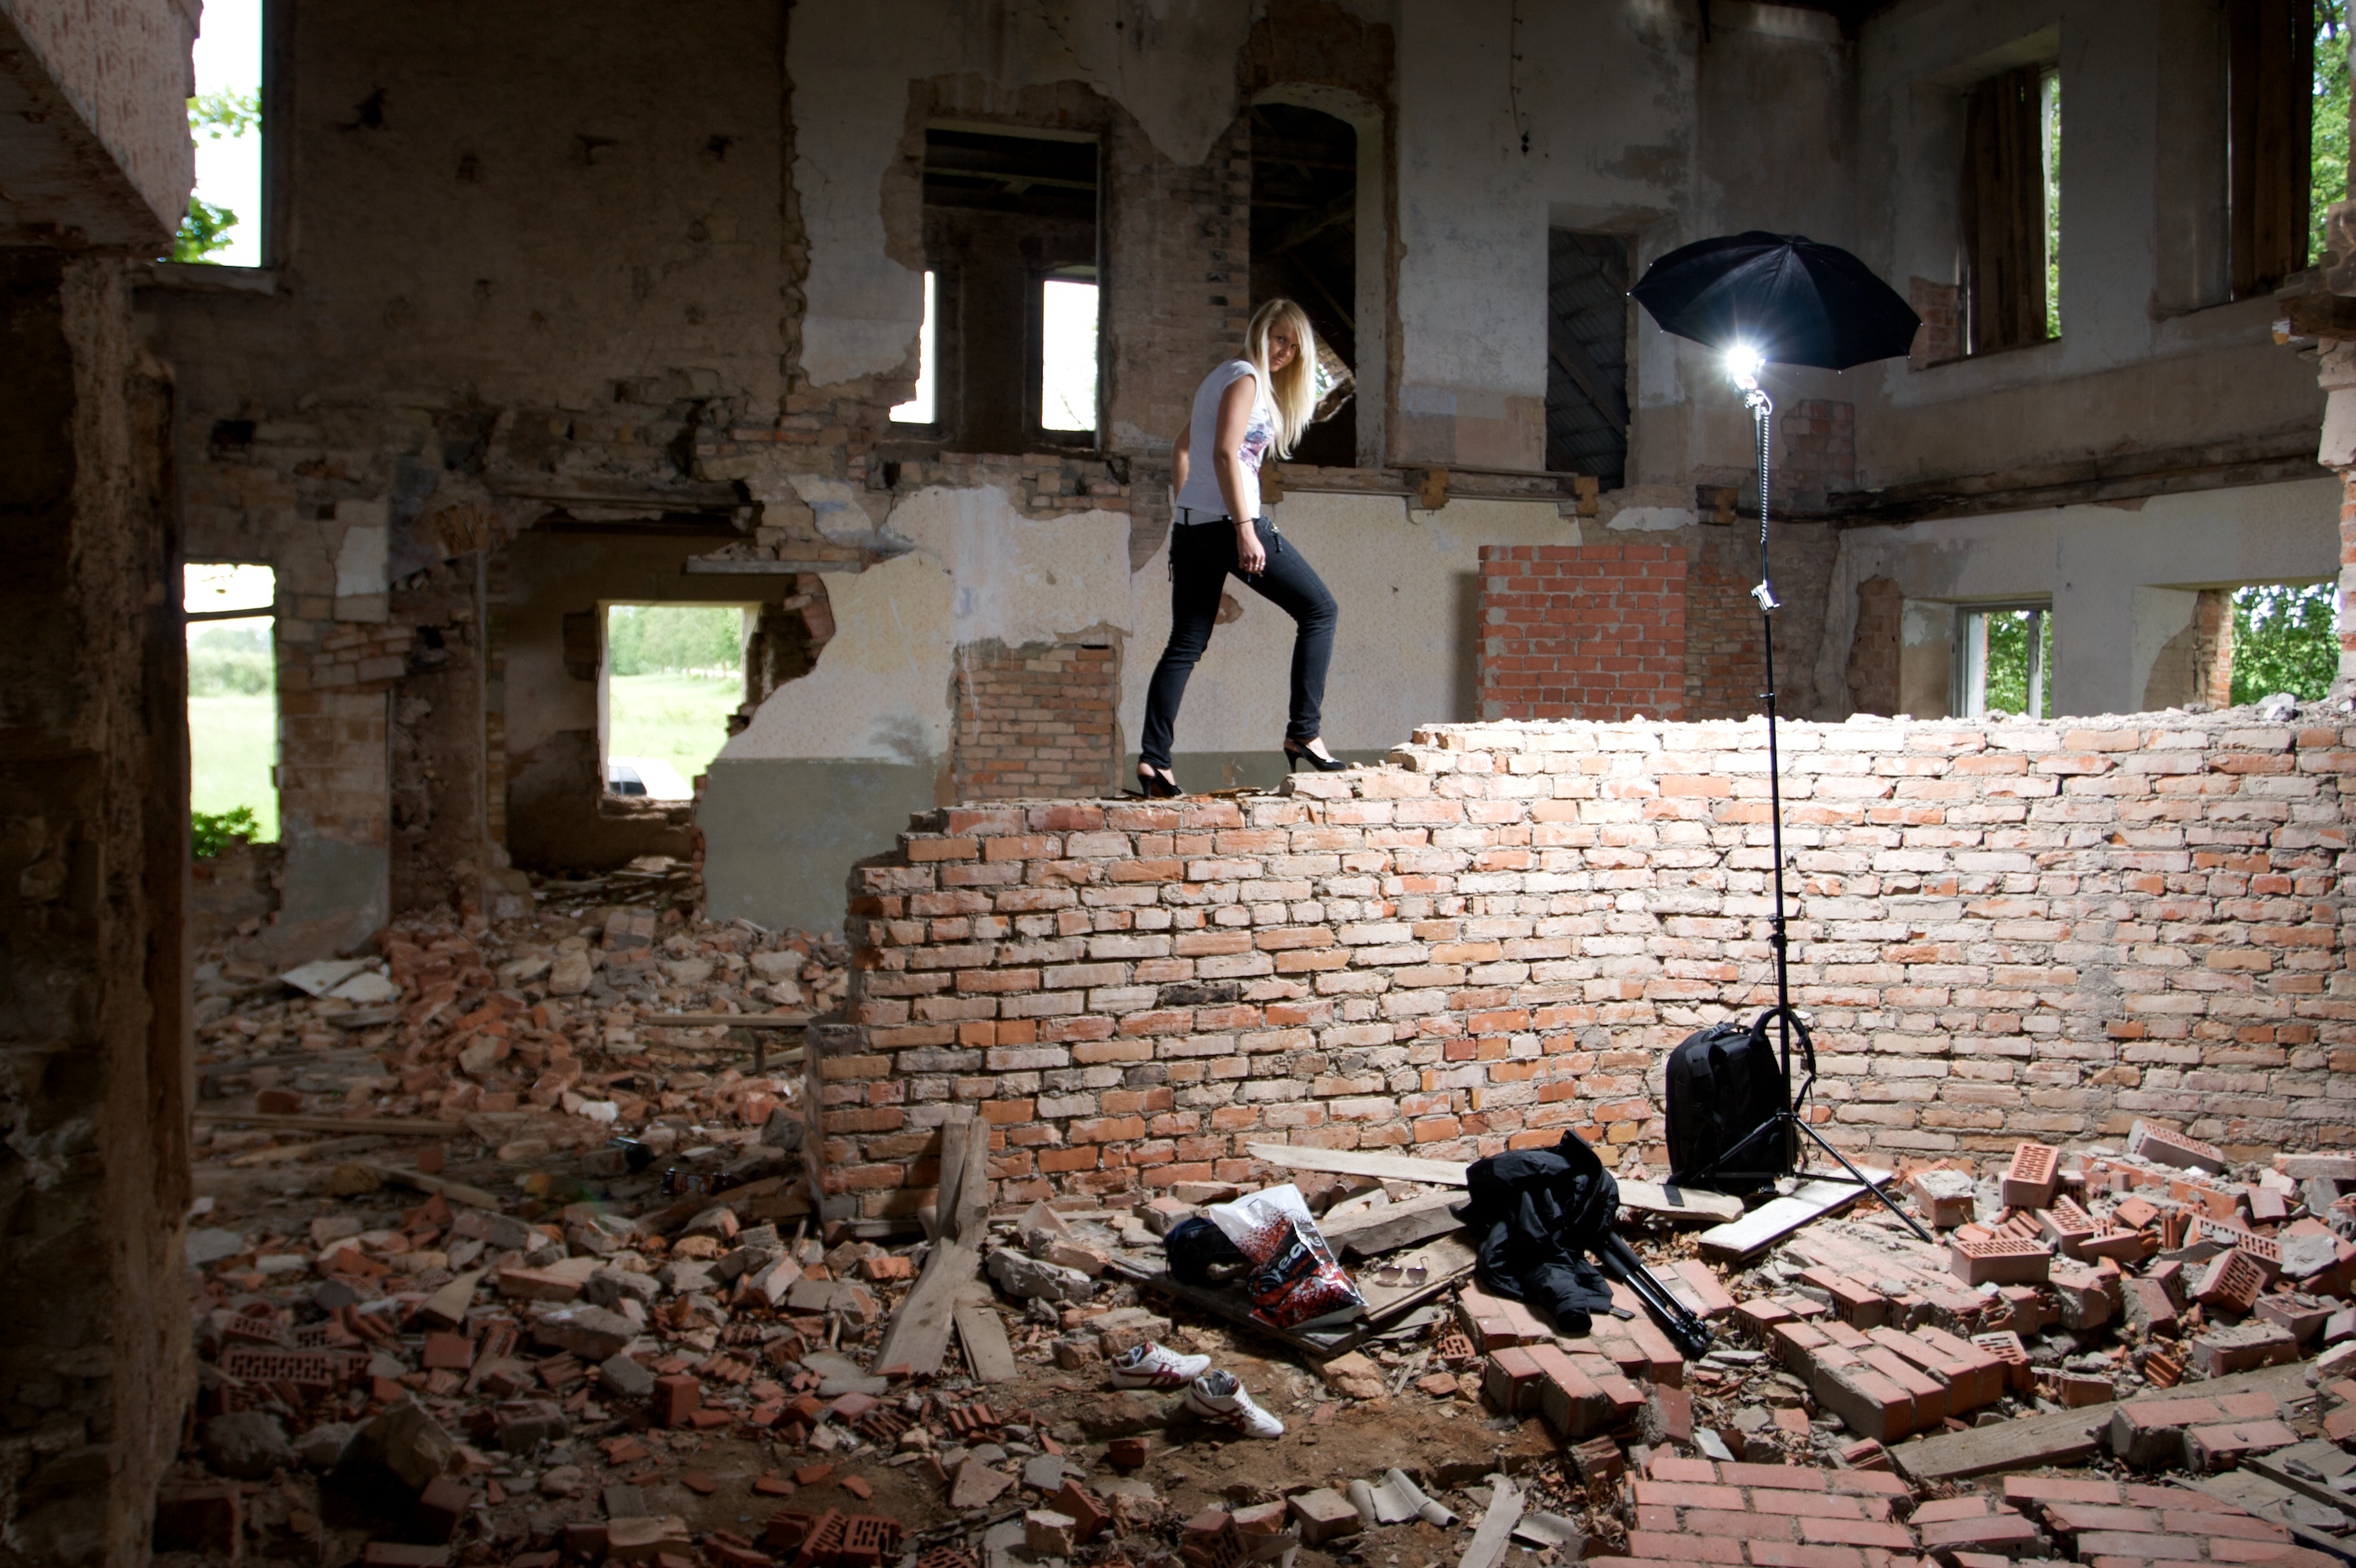 File:Blond woman in a abandoned building 04.jpg - Wikimedia Commons